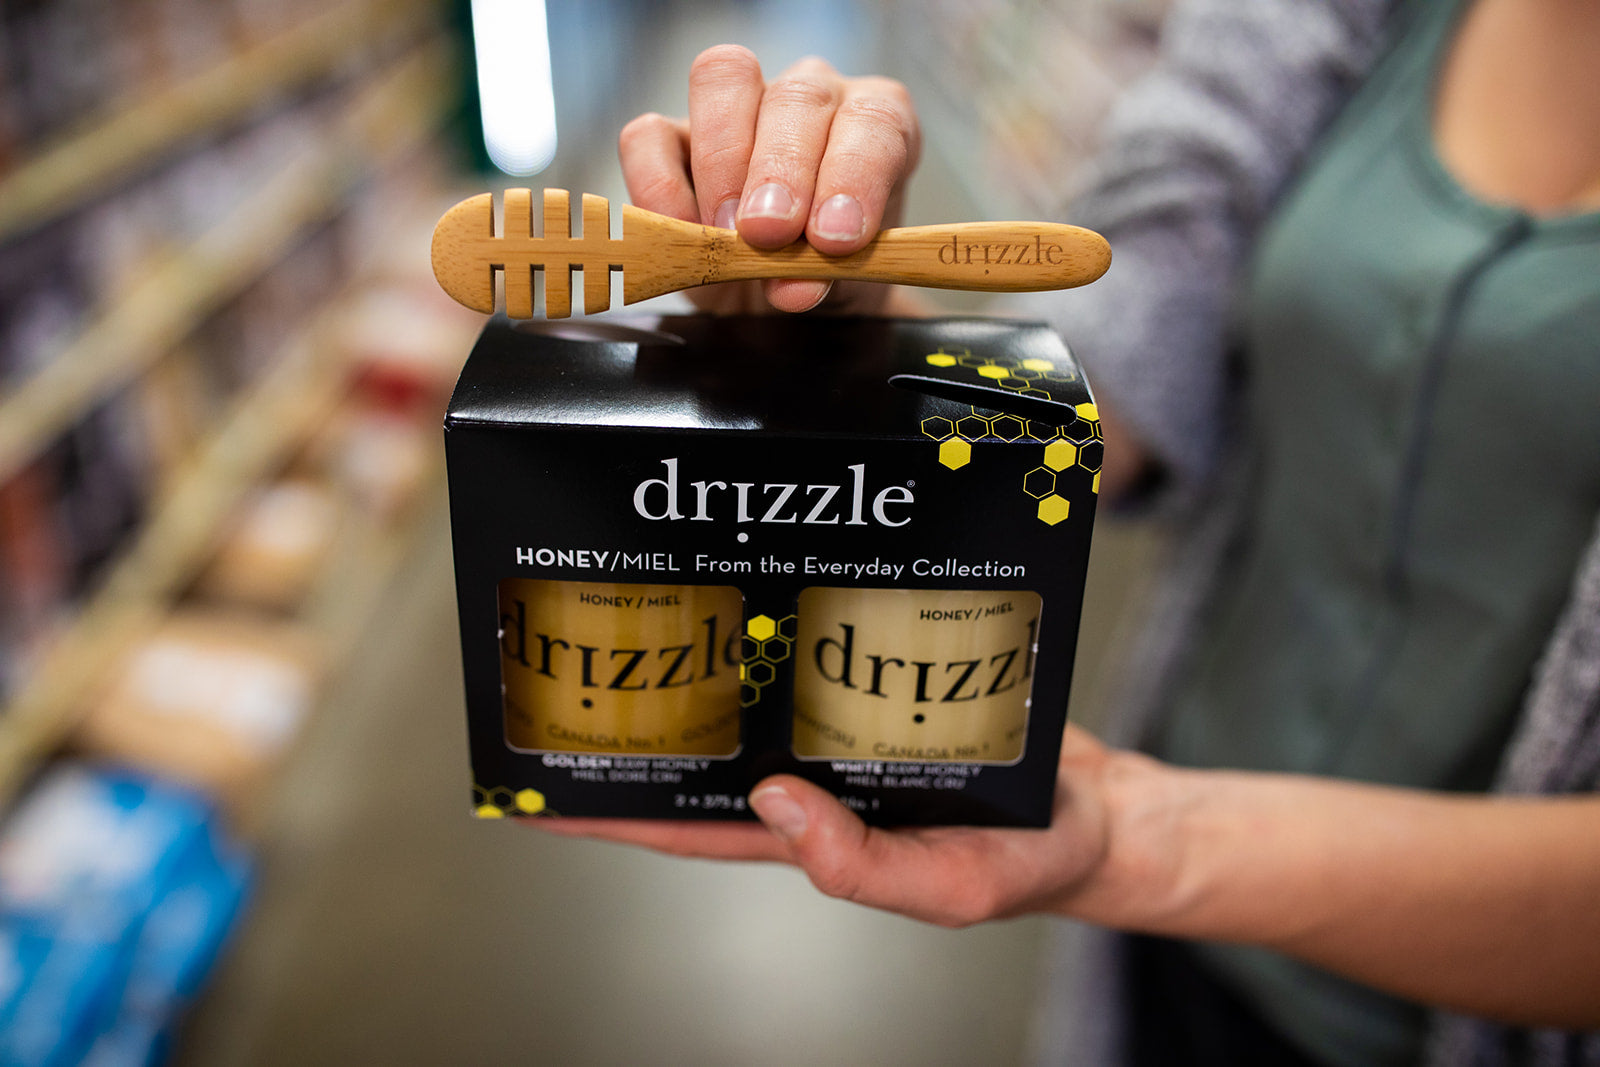 Drizzle Honey Everyday Collection Box at a grocery store.